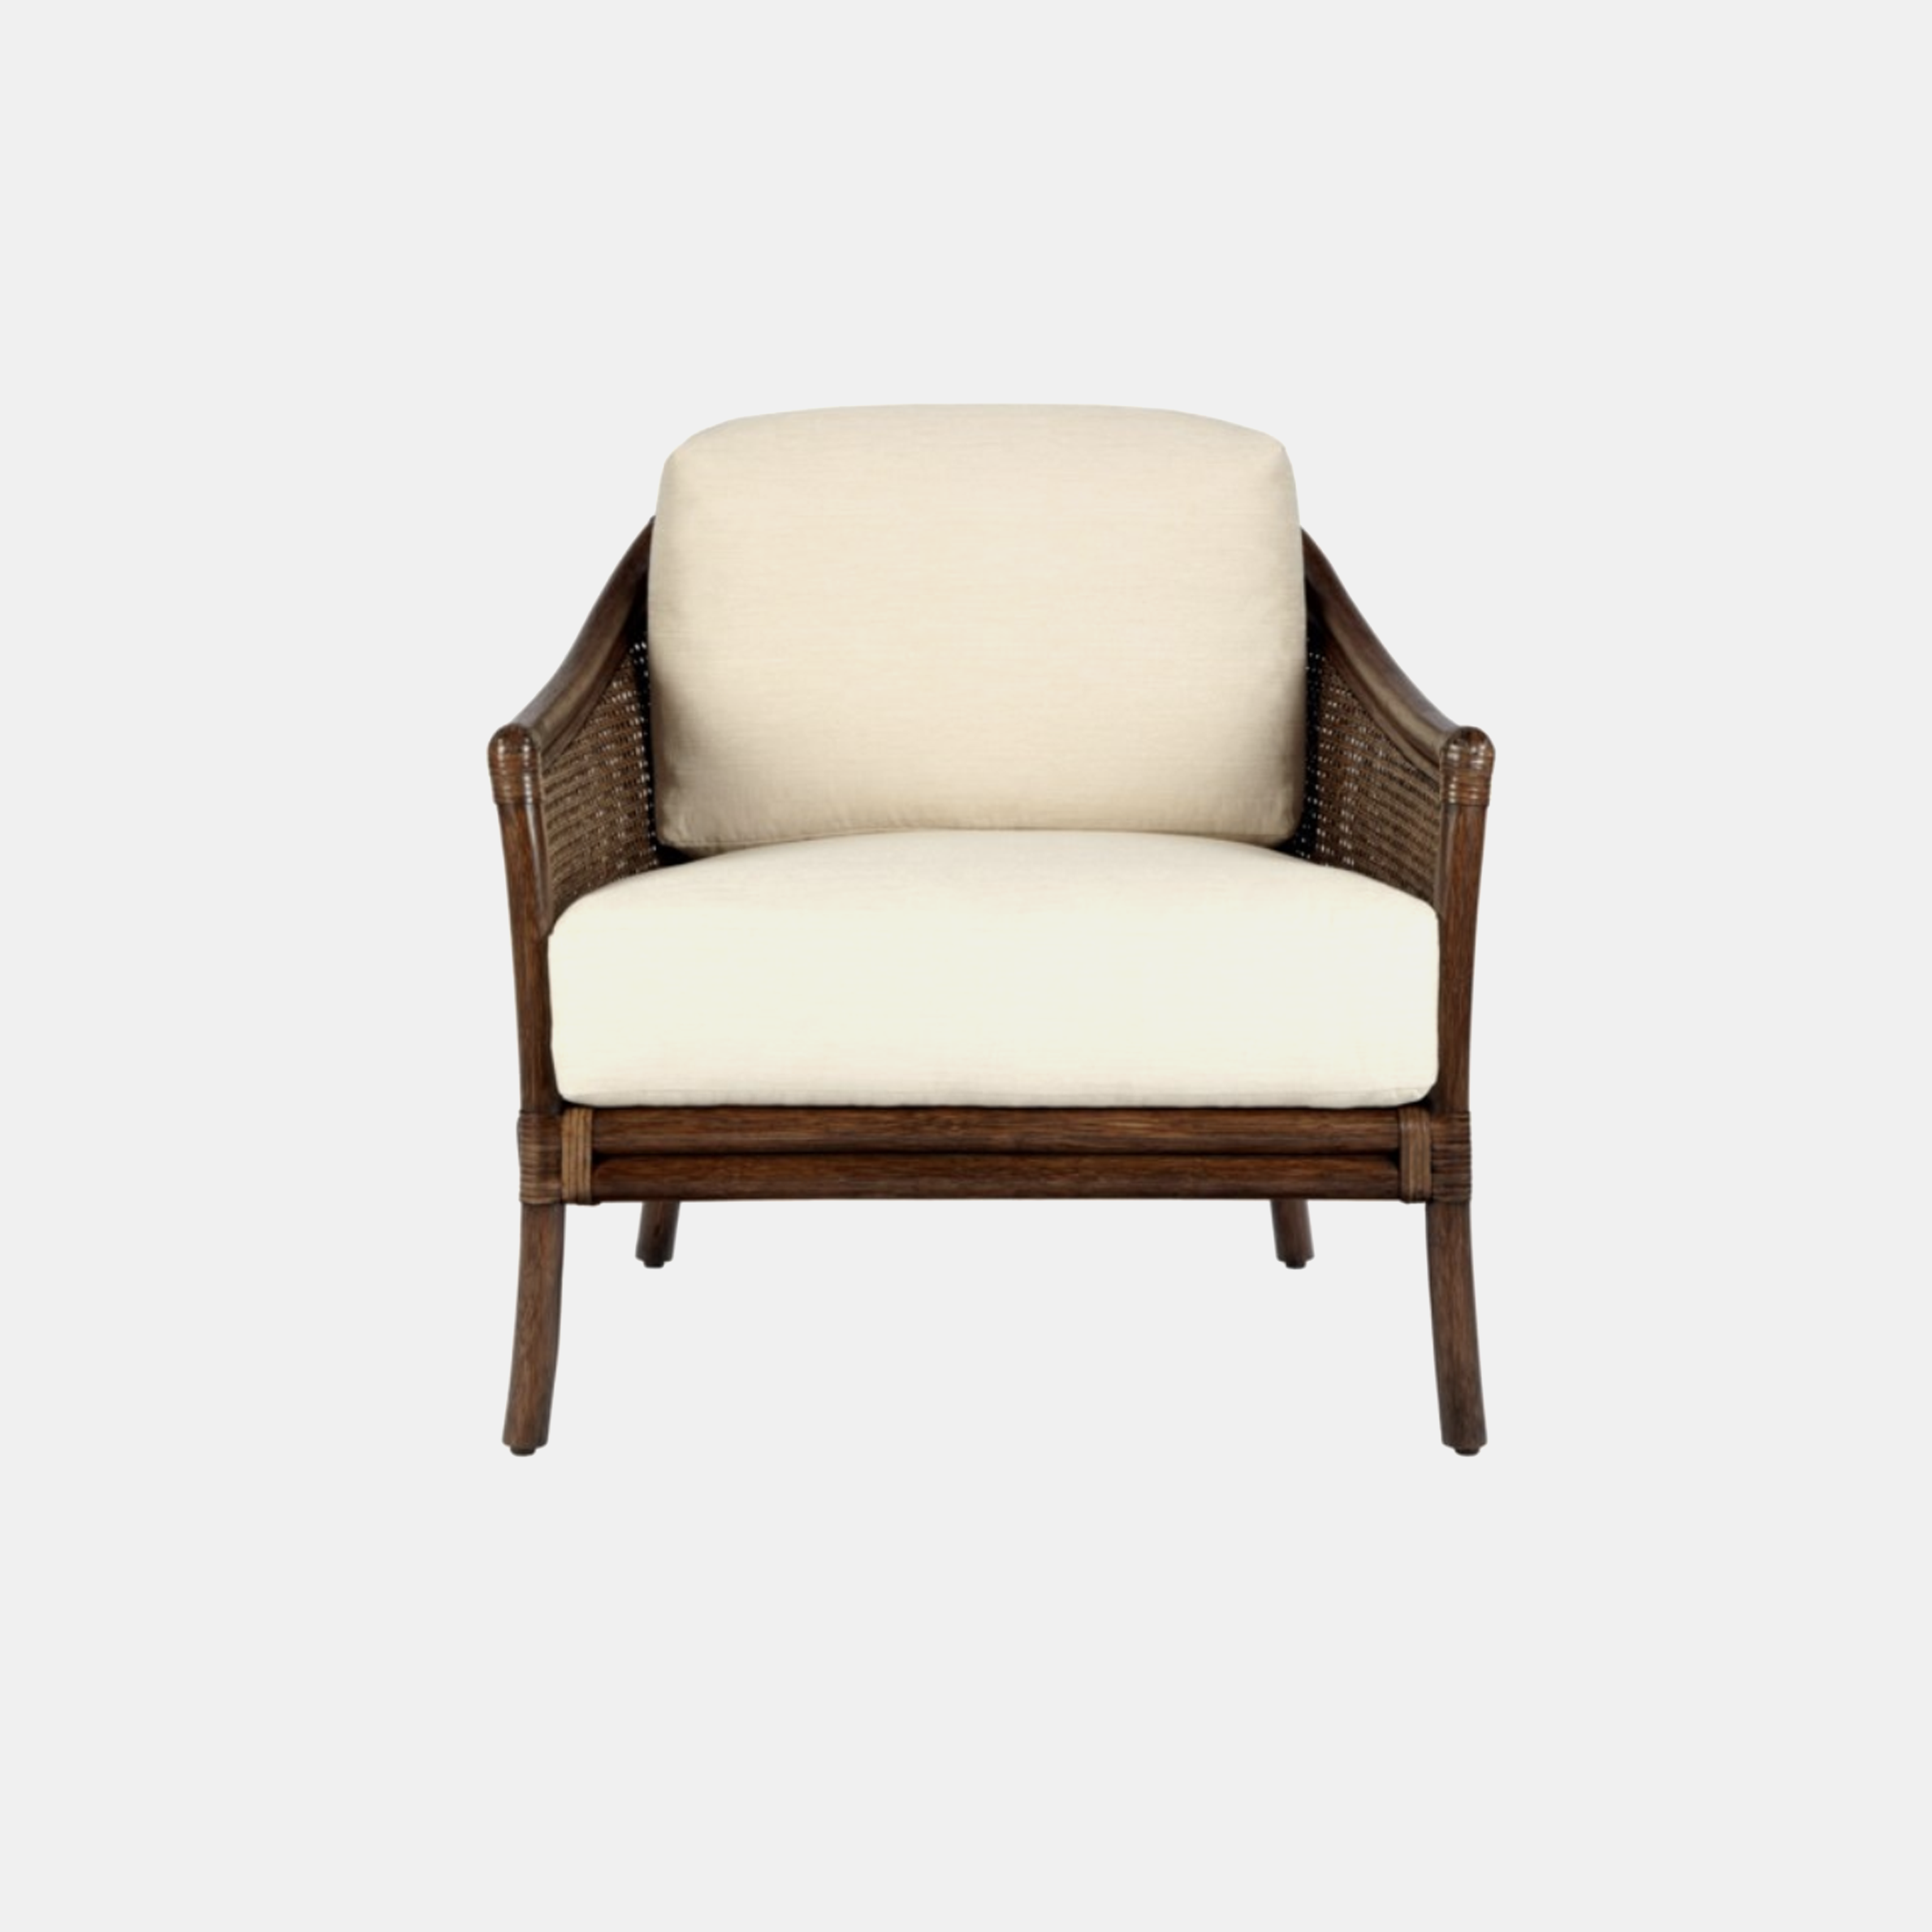 Tivoli Lounge Chair  30'' x 32.5'' x 33'' Available in cinnamon (shown) and nutmeg. Also available as dining arm chair. SKU1499SLM